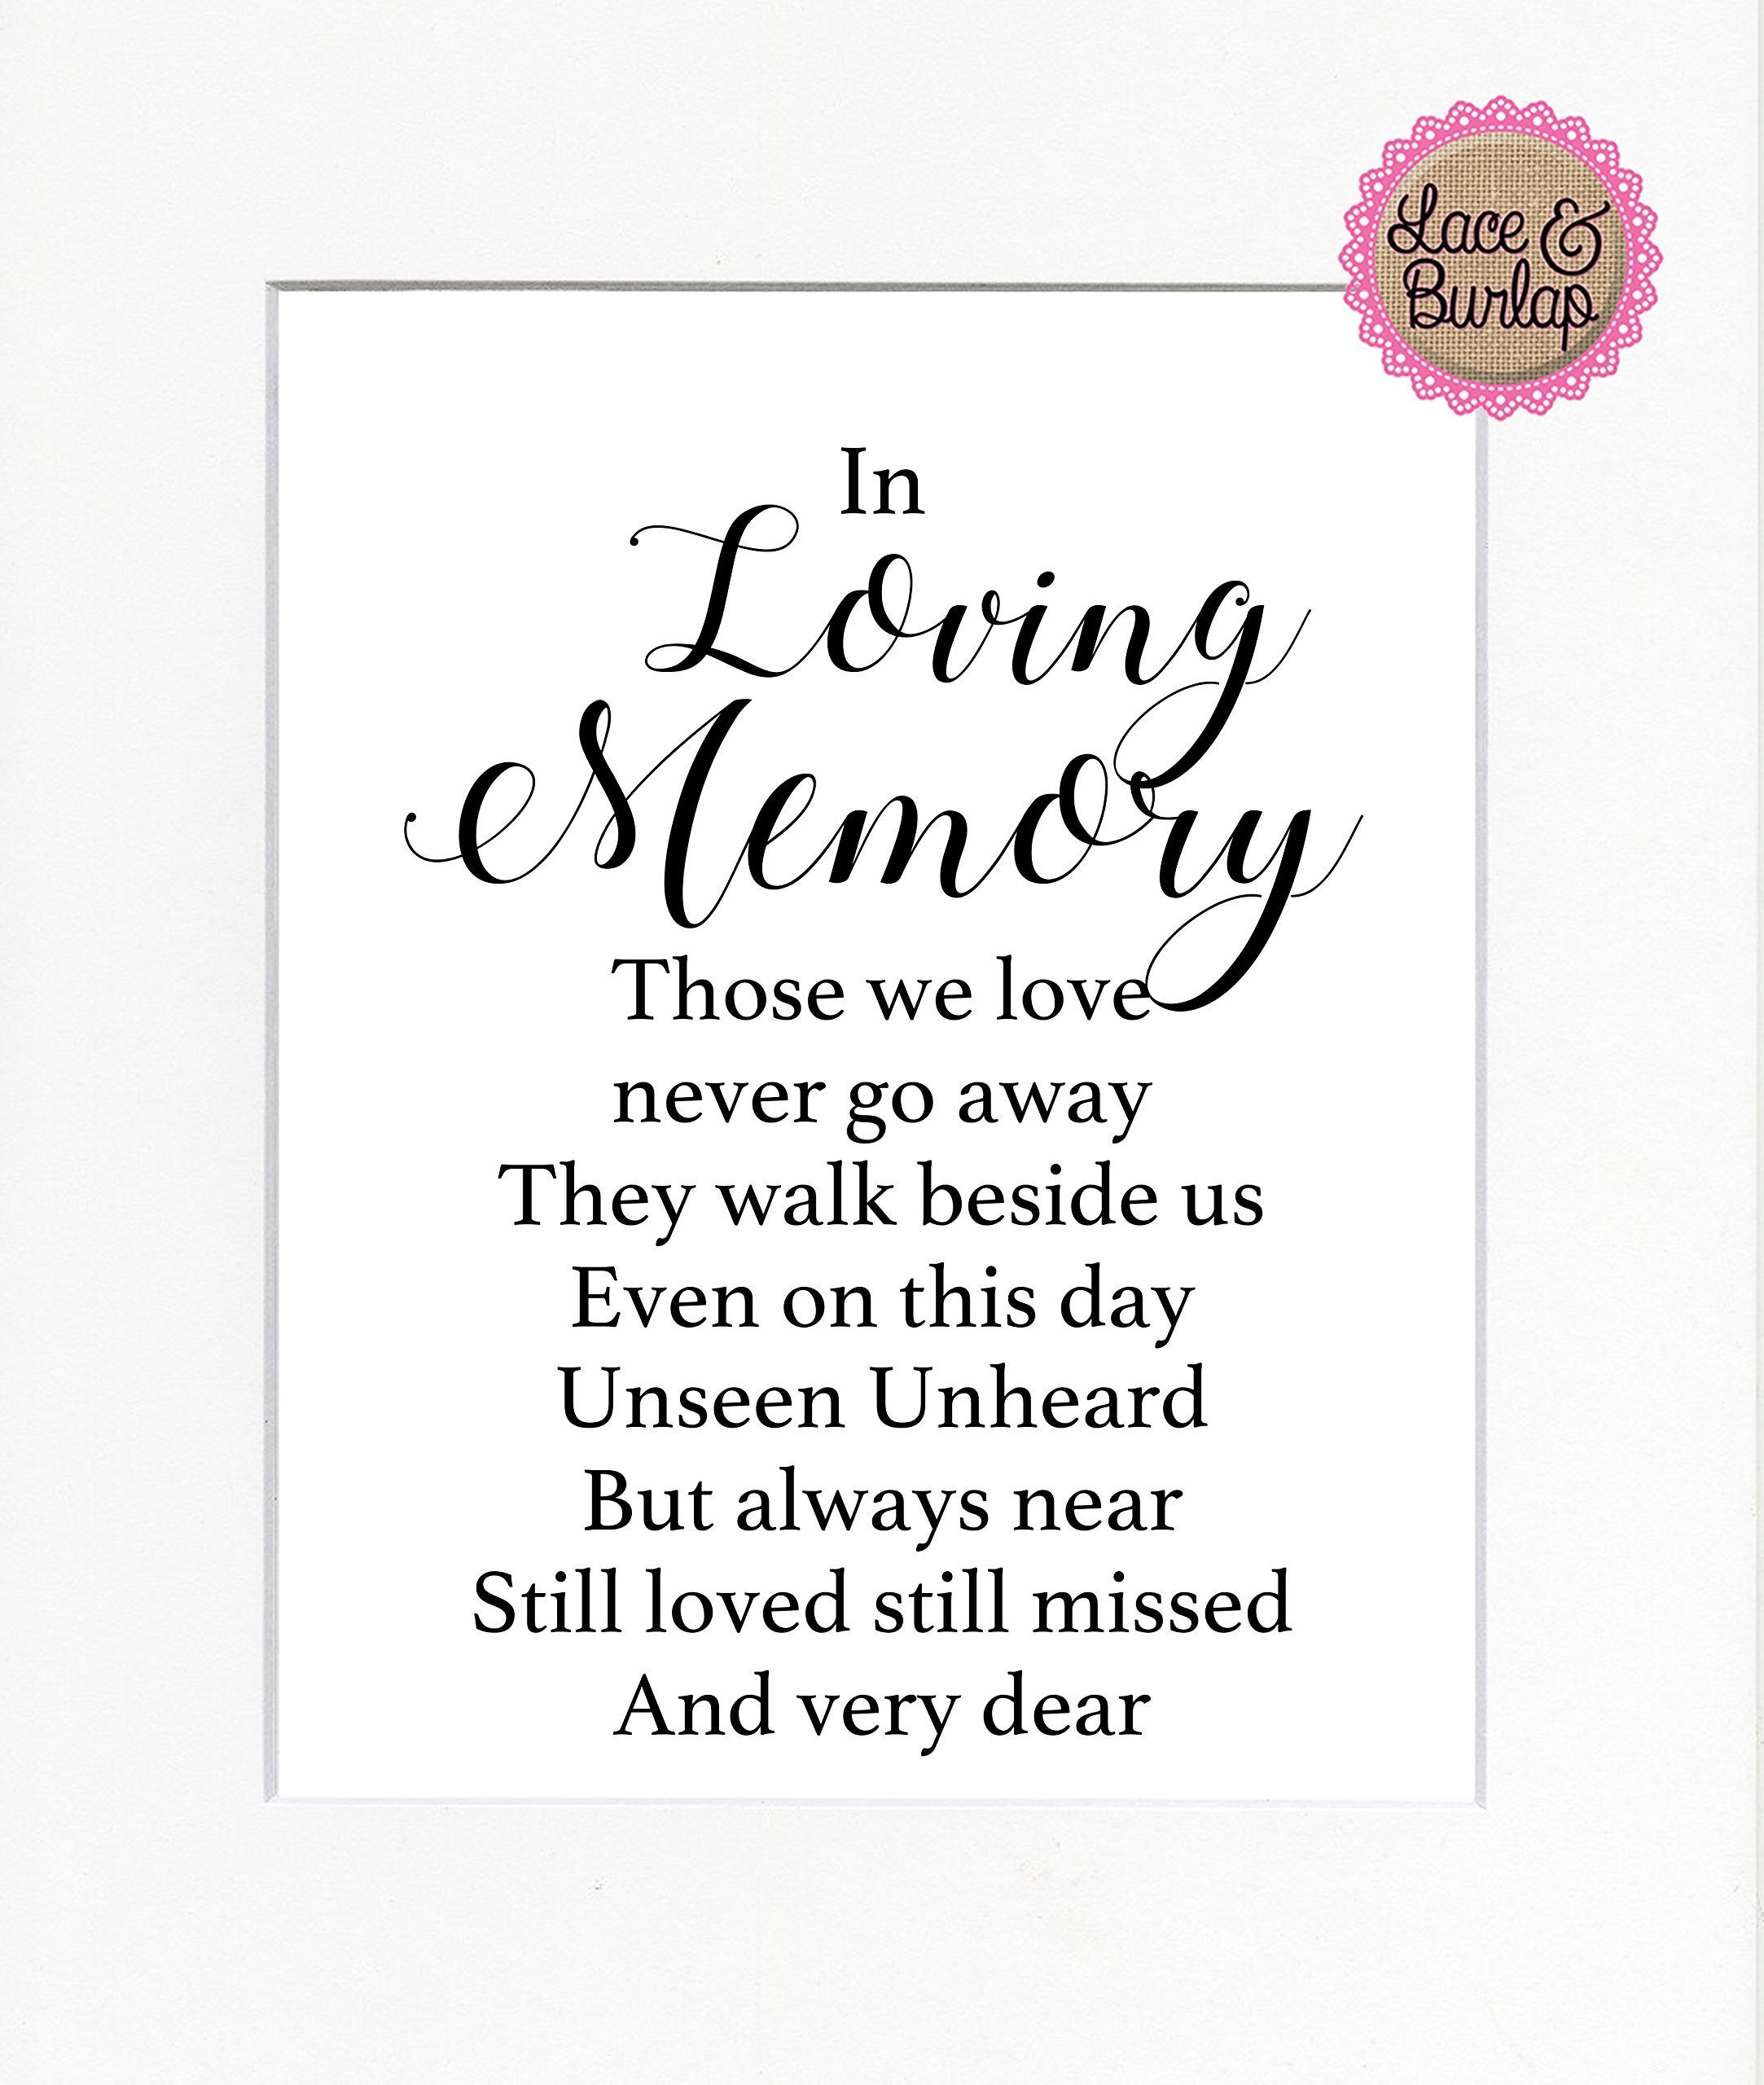 8x10 UNFRAMED PRINT In Loving Memory Those we Love Don't Go Away They Walk Beside us Every Day/Print Sign UNFRAMED/Quote Poem Memorial Remembrance Wedding or Home Sign In Loving Memory Wall Décor